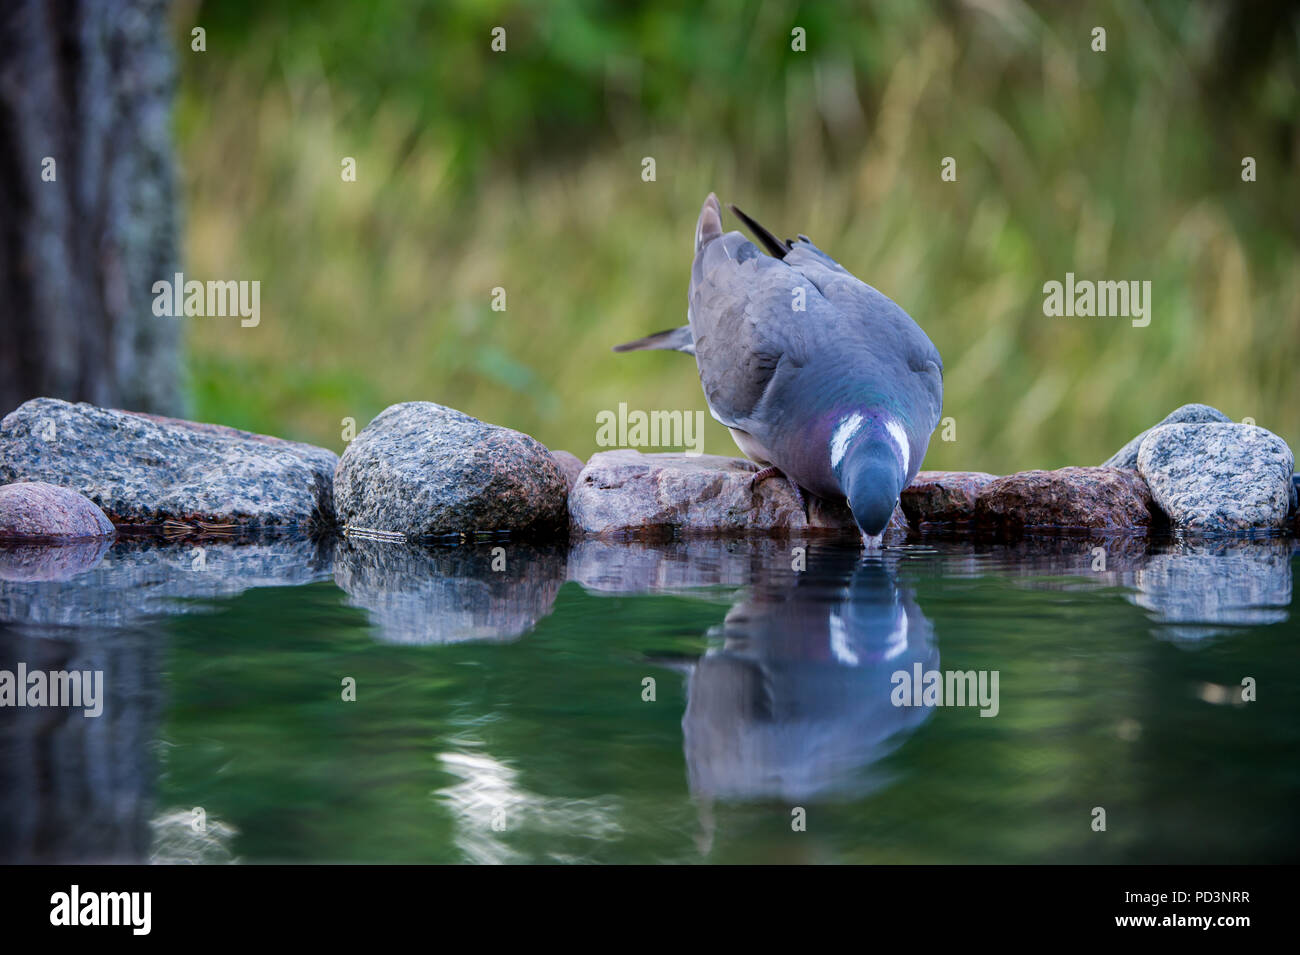 The Common Wood Pigeon (Columba palumbus) drinking, from the front, at the waterhole with a nice defocused background, august in Uppland, Sweden - Stock Image